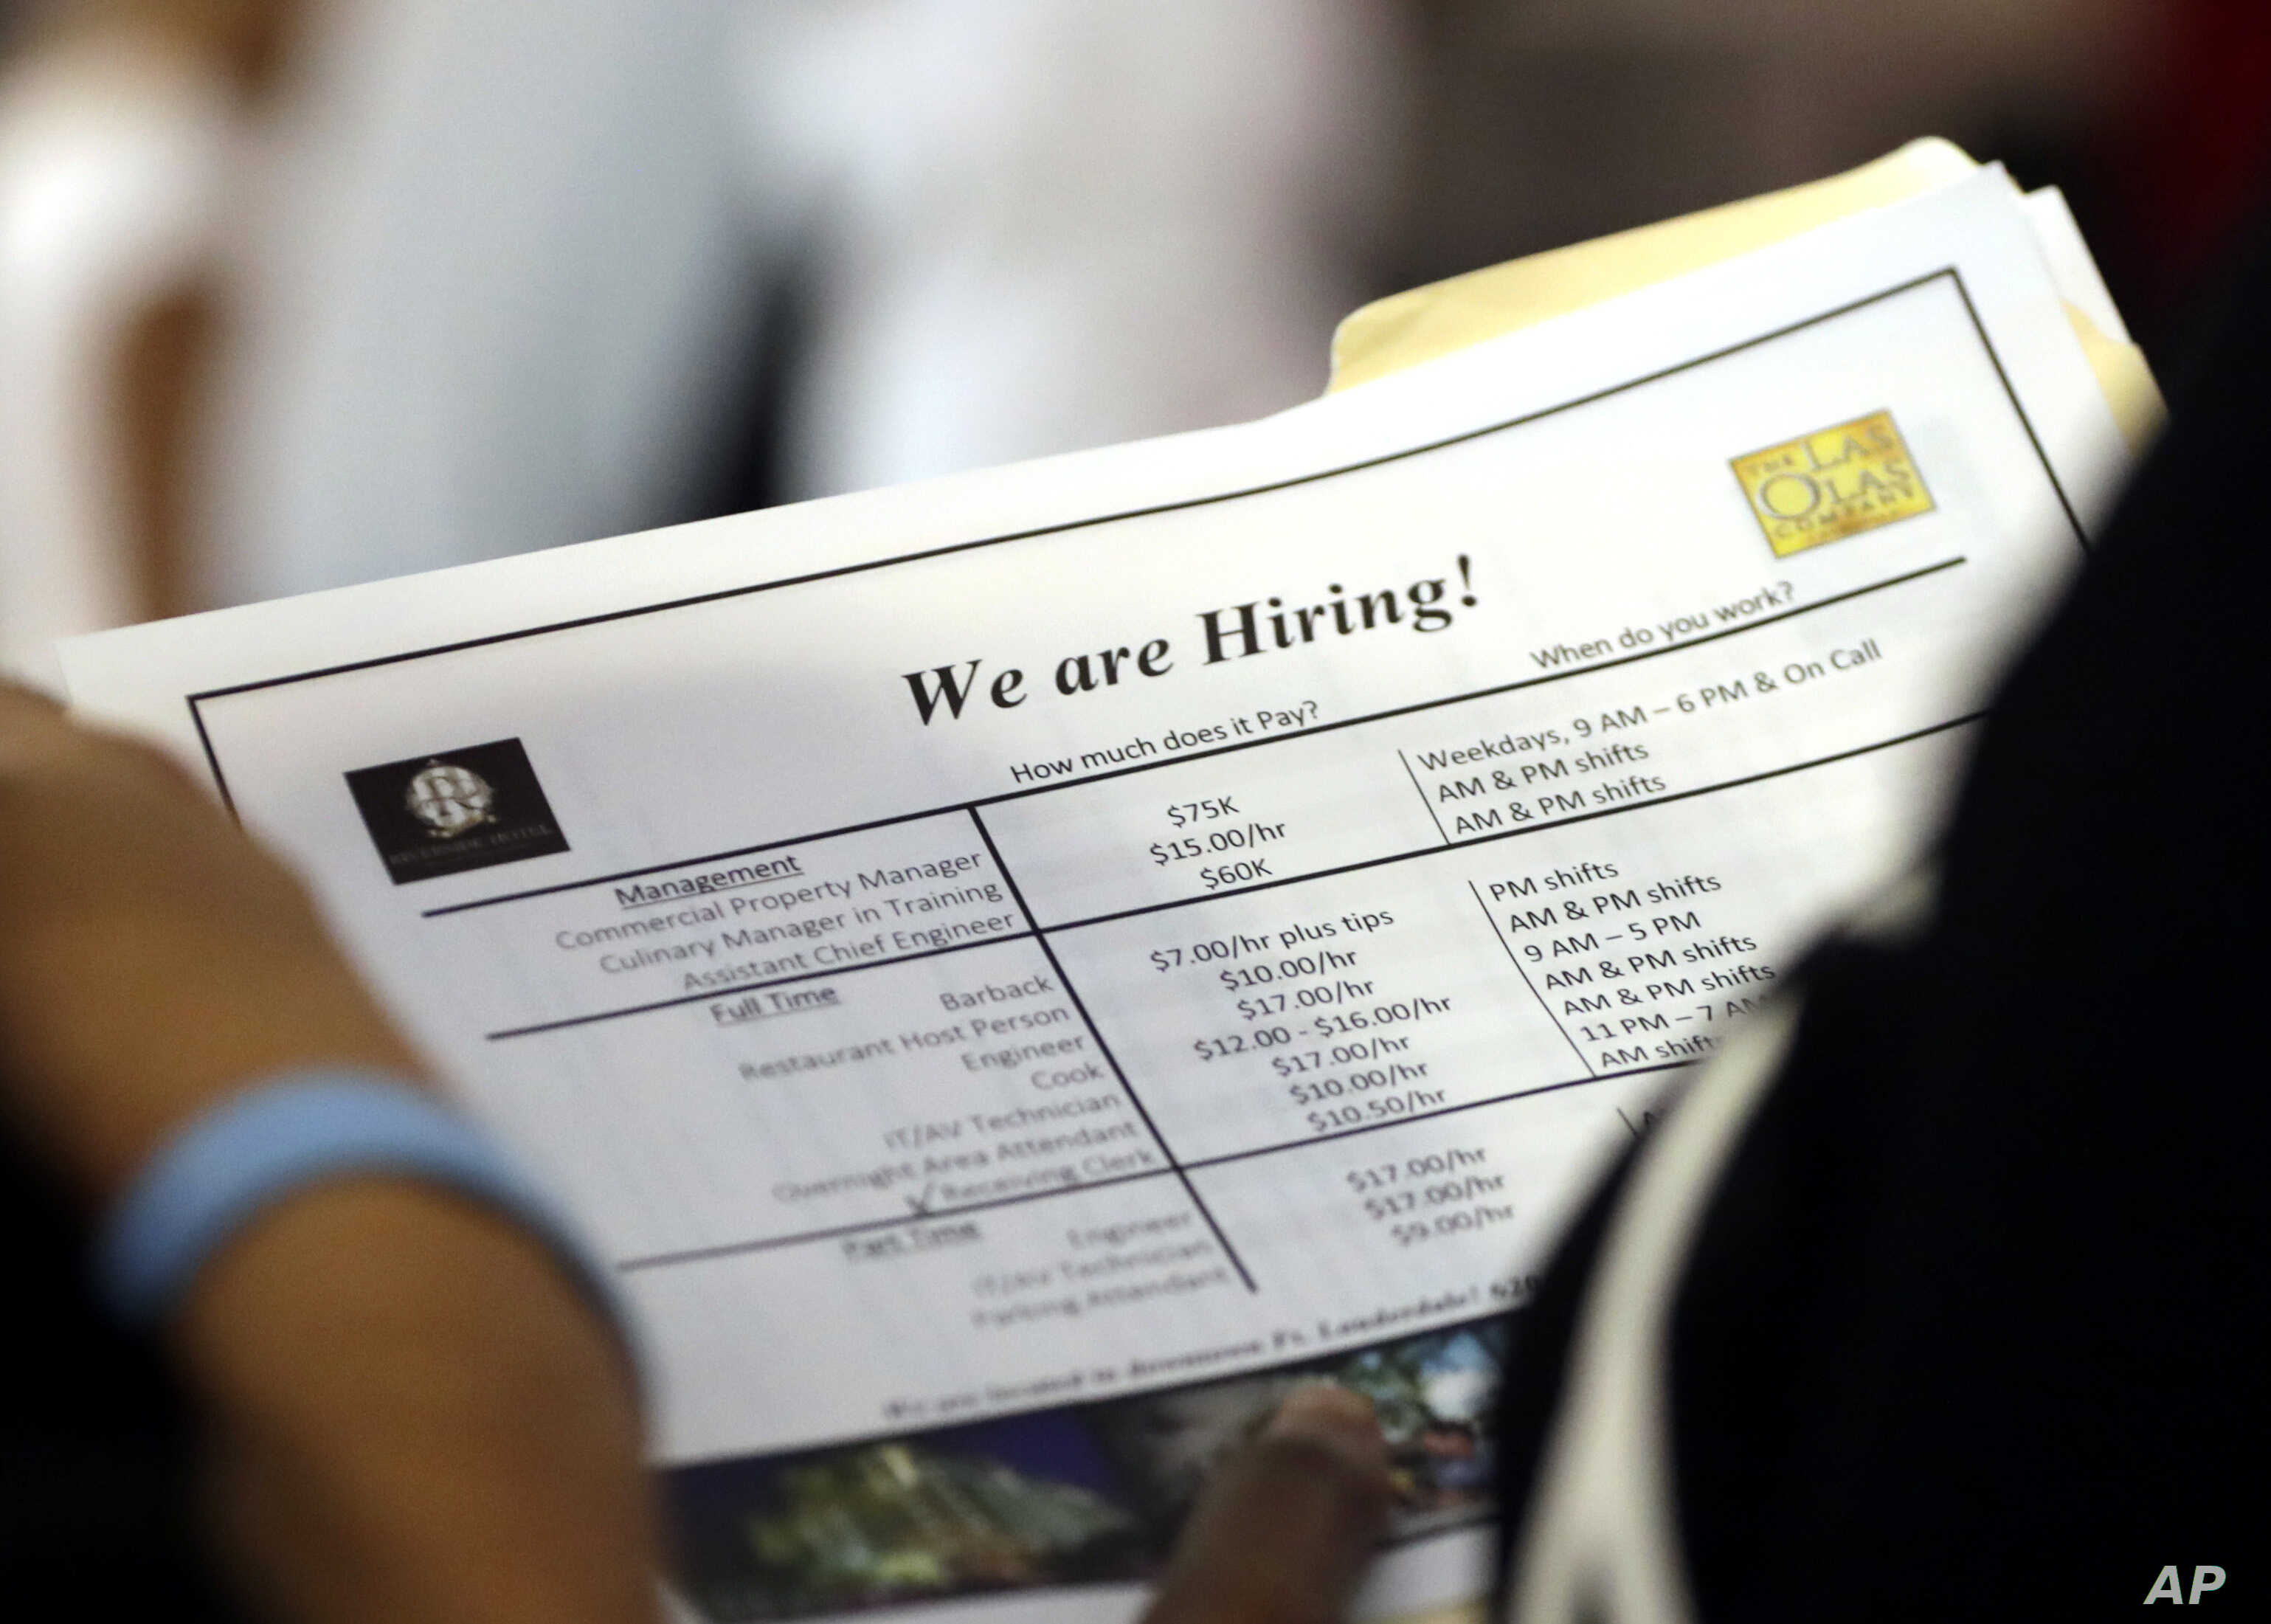 In this Thursday, June 21, 2018 photo, a job applicant looks at job listings for the Riverside Hotel at a job fair hosted by Job News South Florida, in Sunrise, Fla.